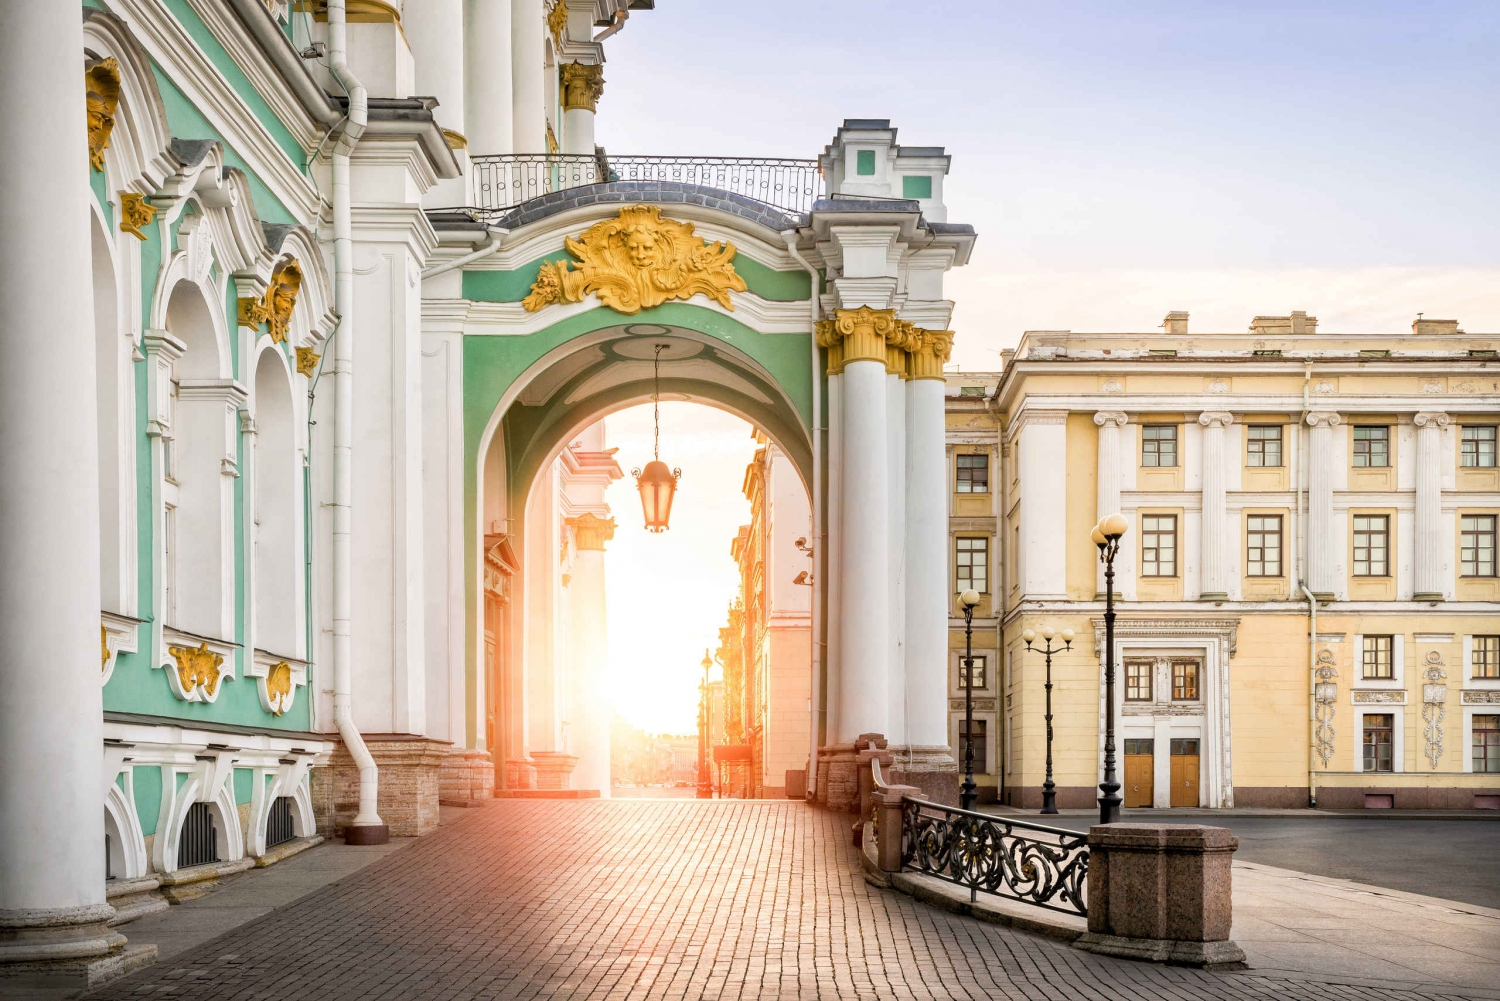 St. Petersburg: Hermitage Museum Guided Tour